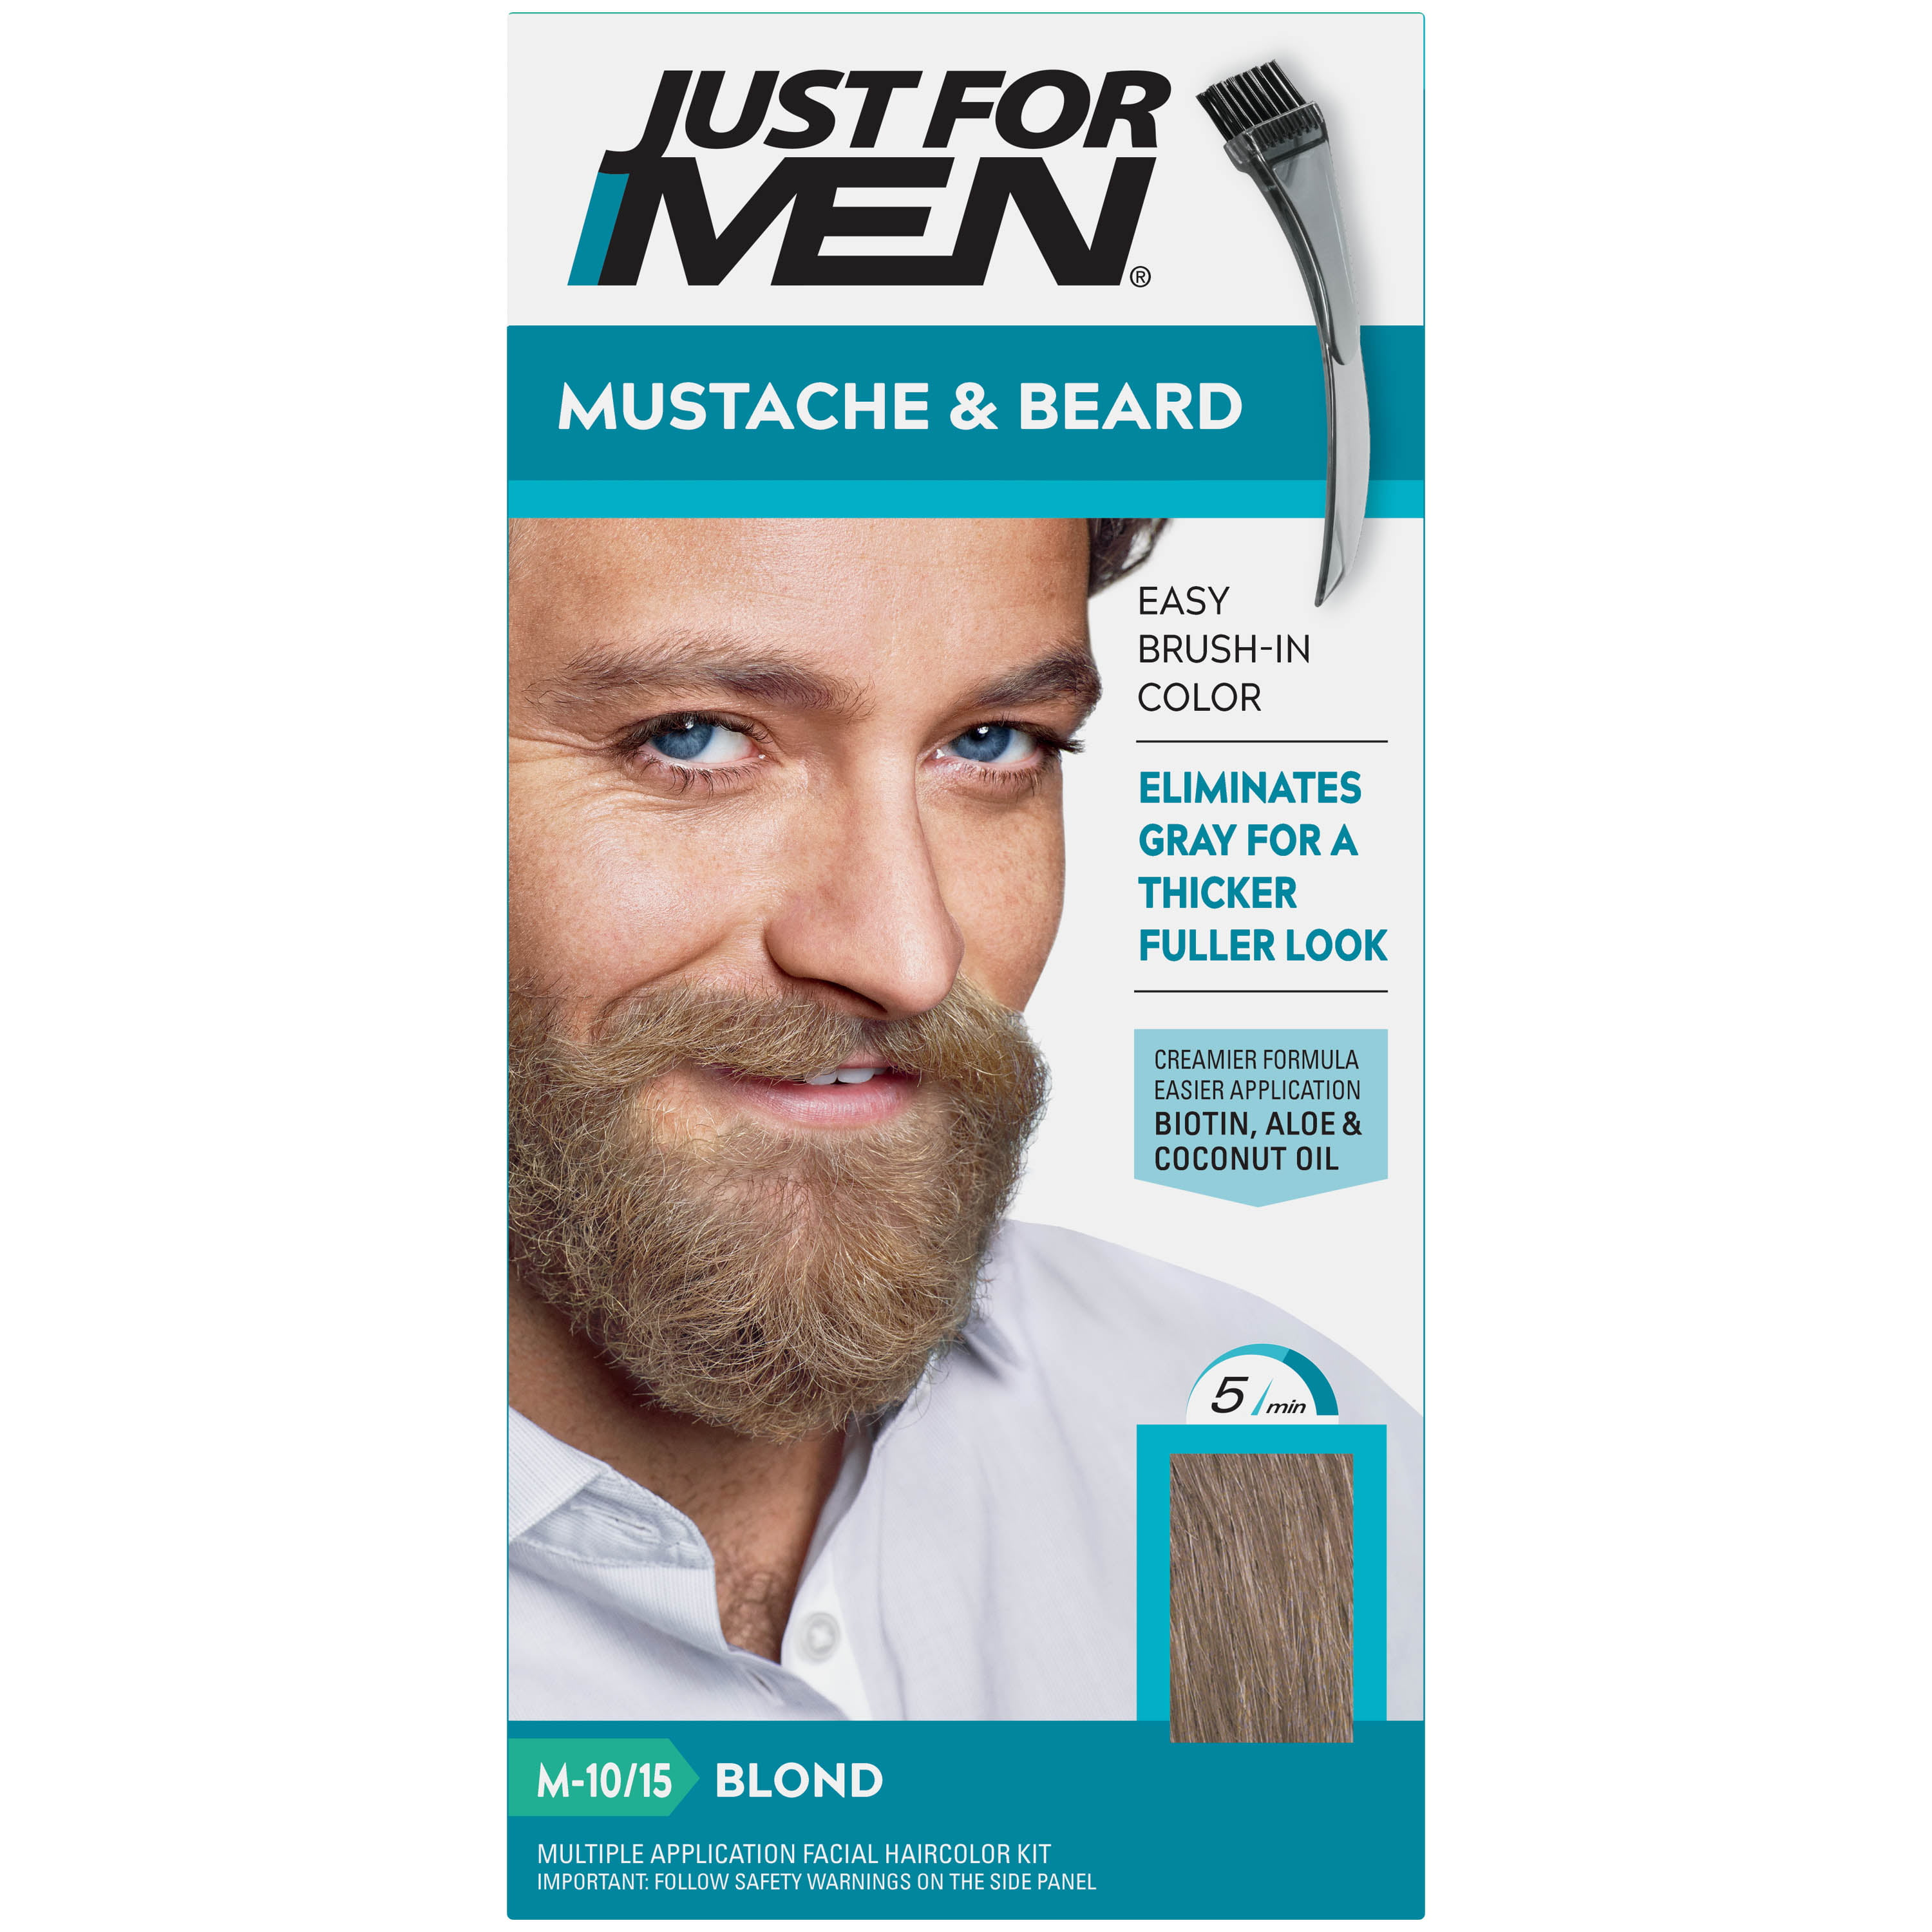 Just For Men Mustache Beard Beard Coloring For Gray Hair With Brush Included Color Blond M 10 15 Walmart Com Walmart Com